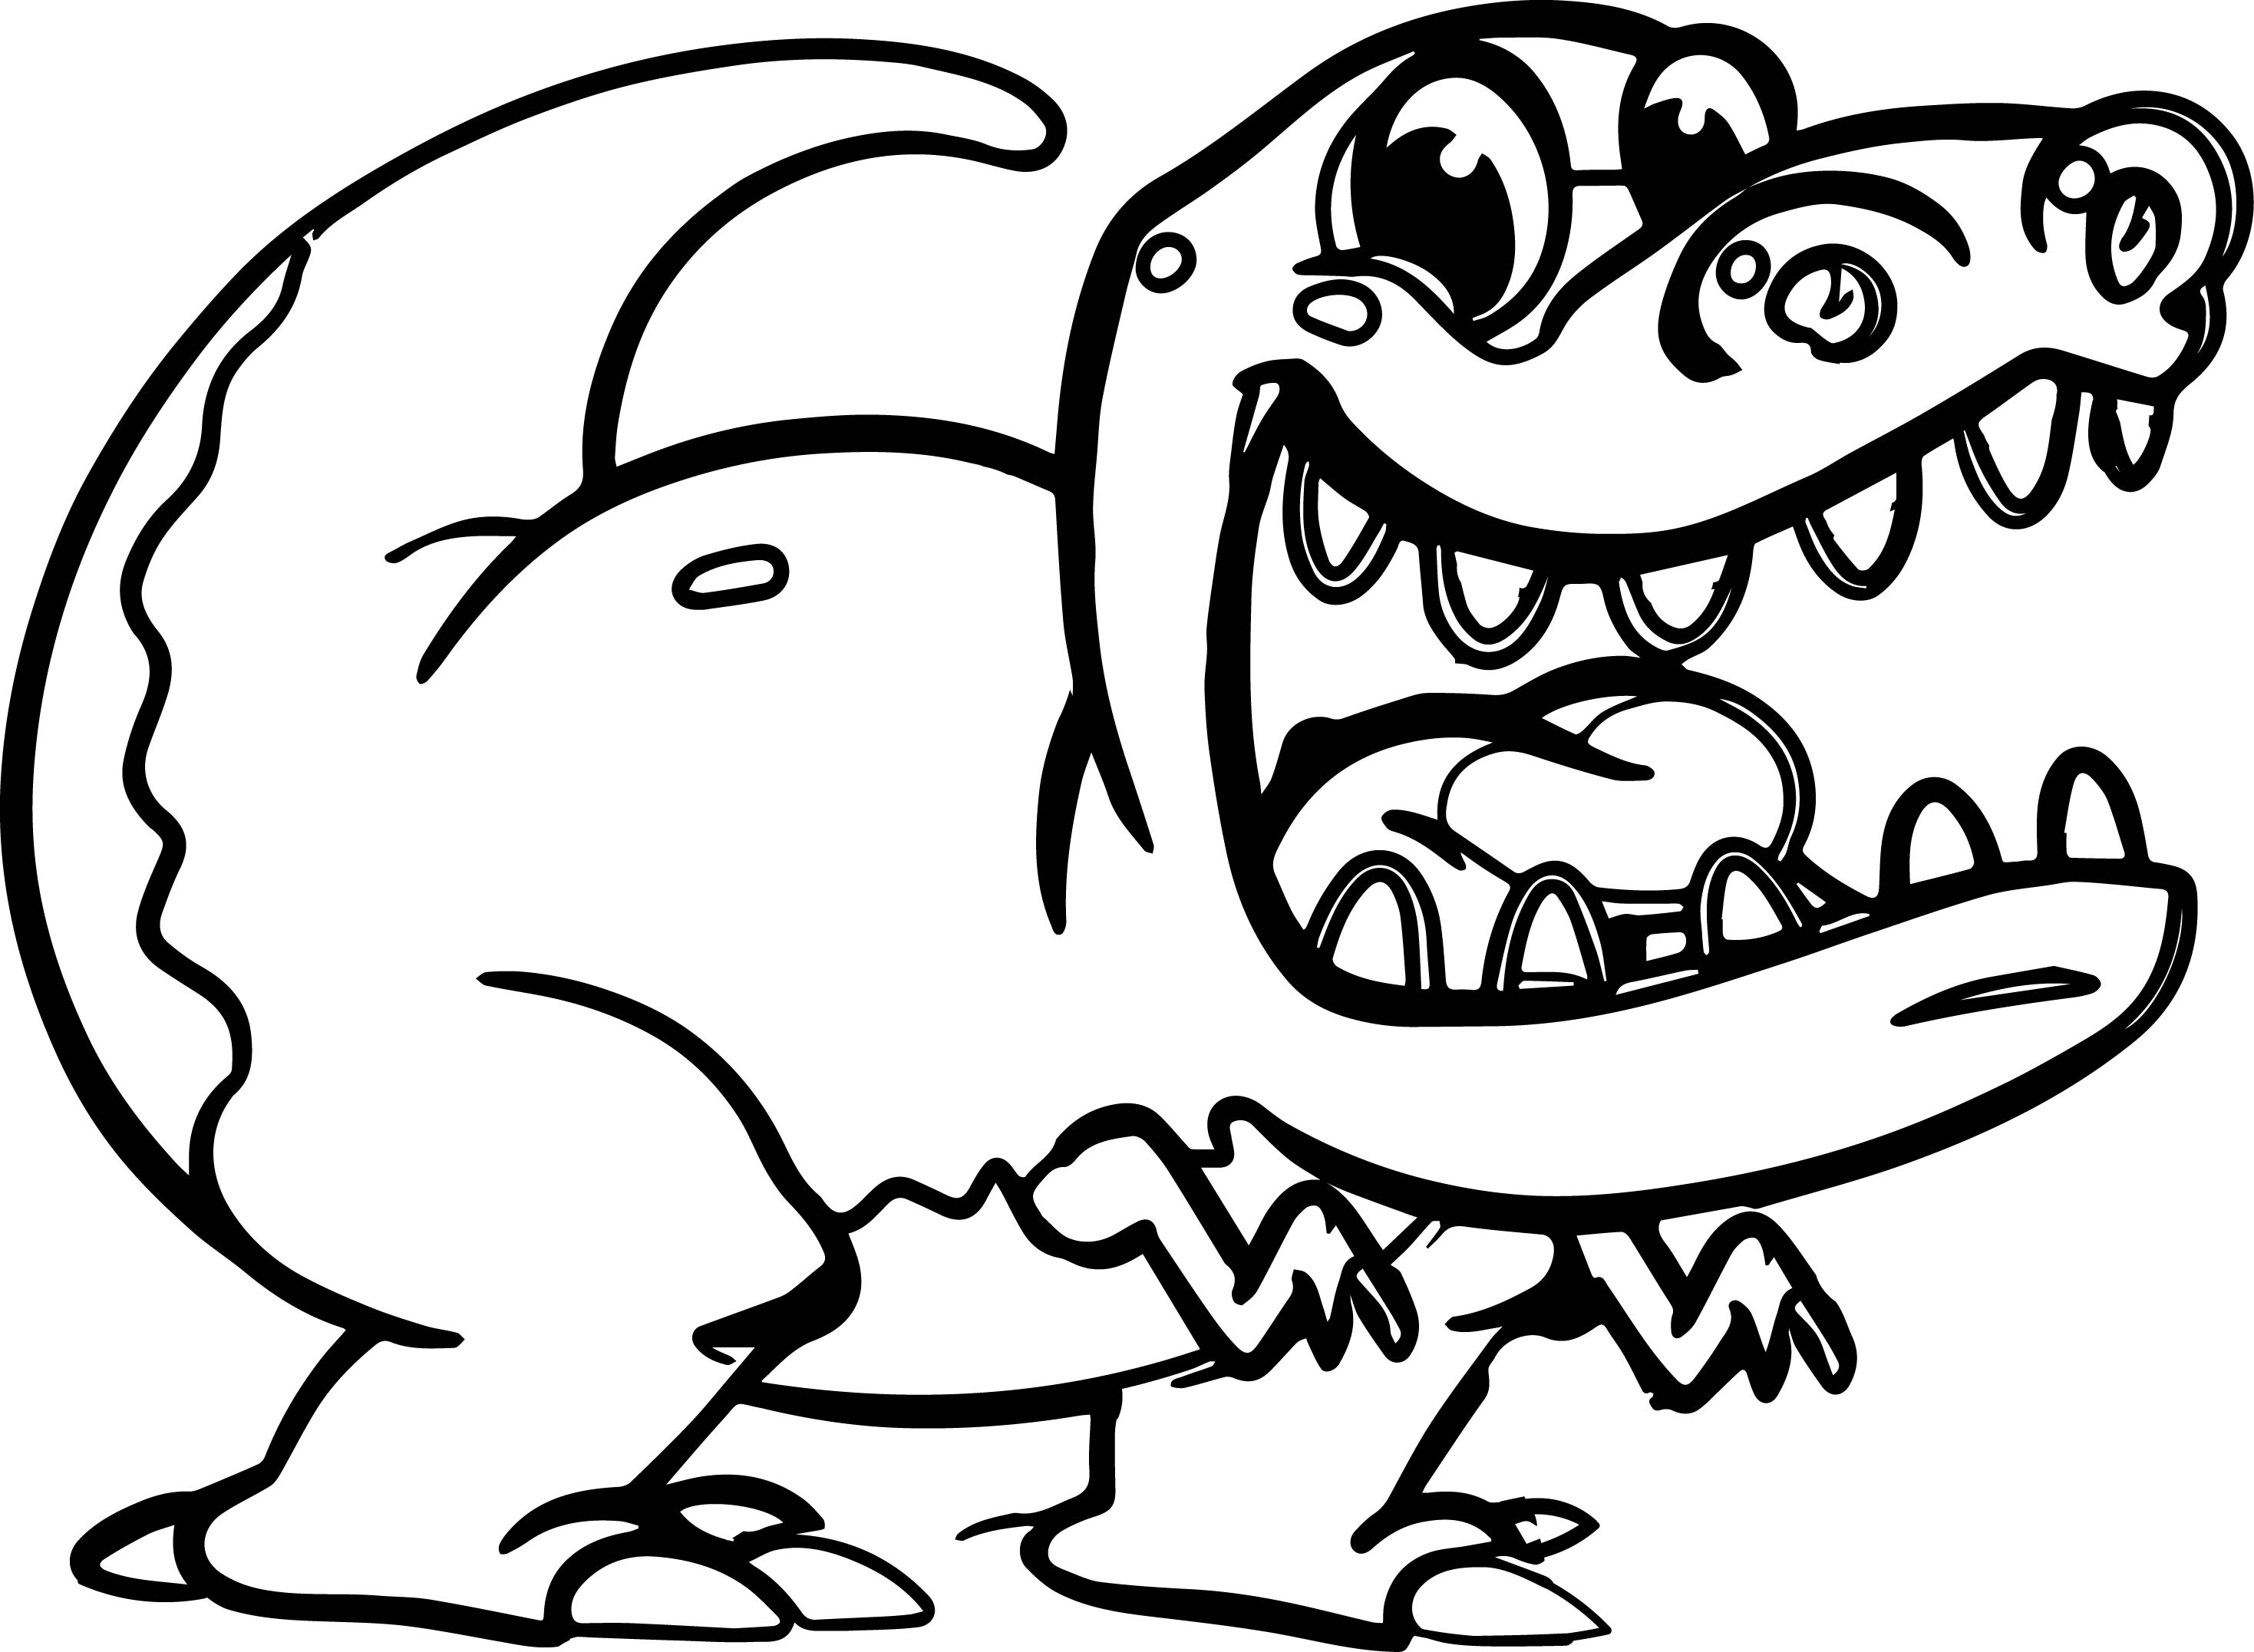 dino coloring page baby dinosaur coloring pages for preschoolers activity page coloring dino